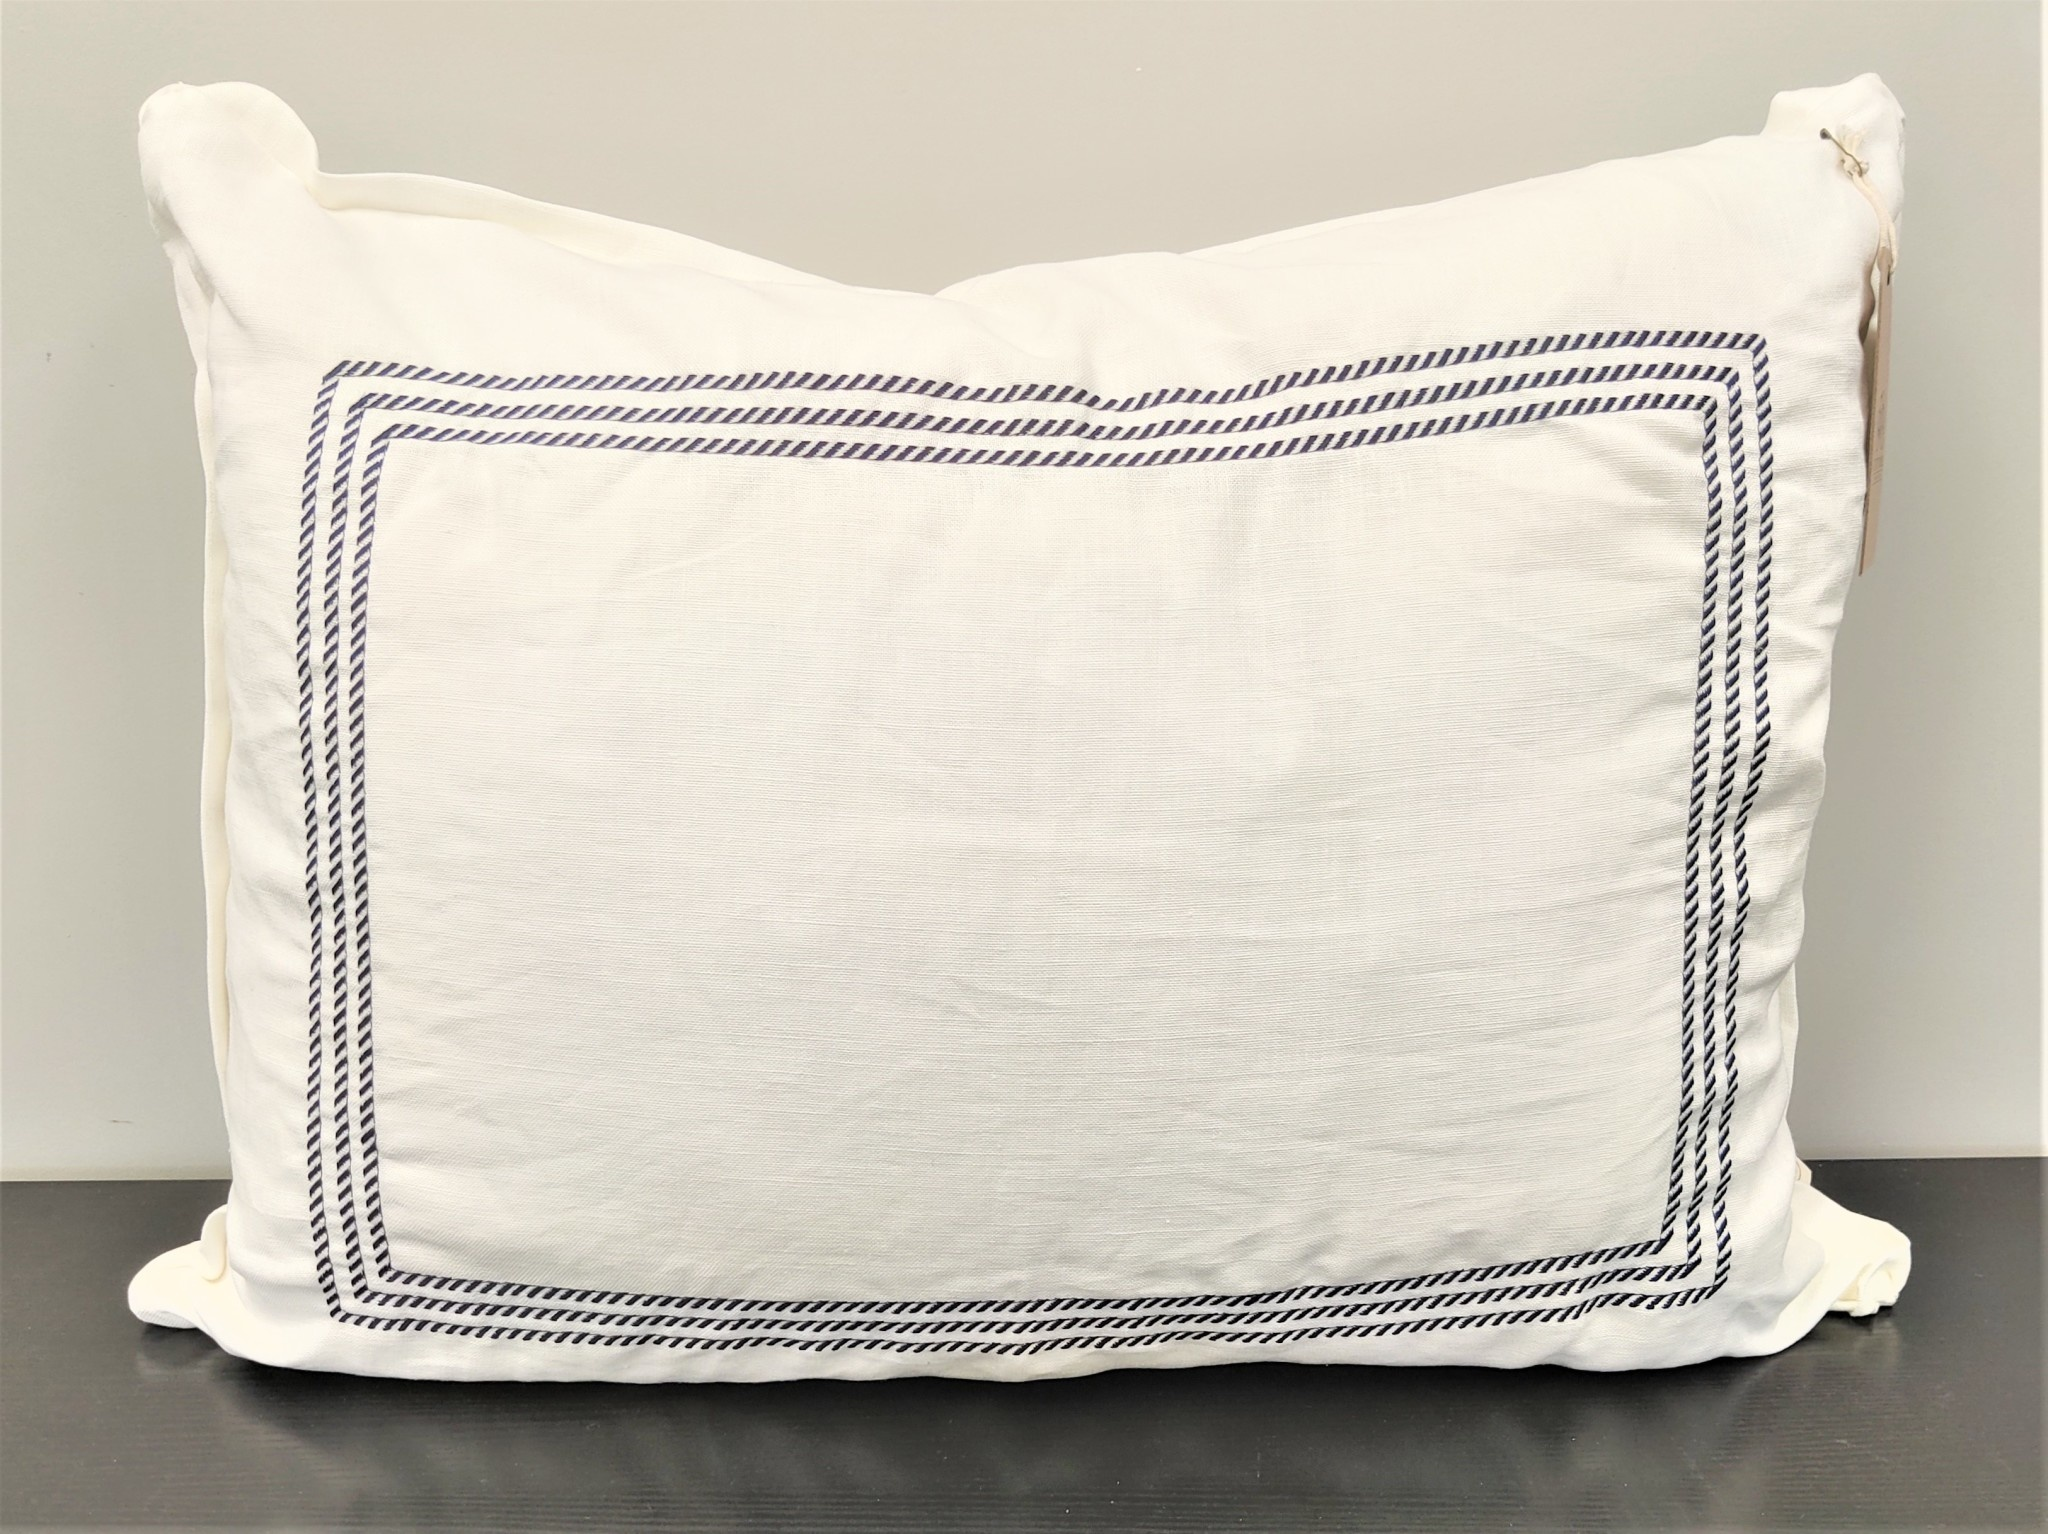 White Belgium Linen with Navy Ticking Frame Embroidery Sham